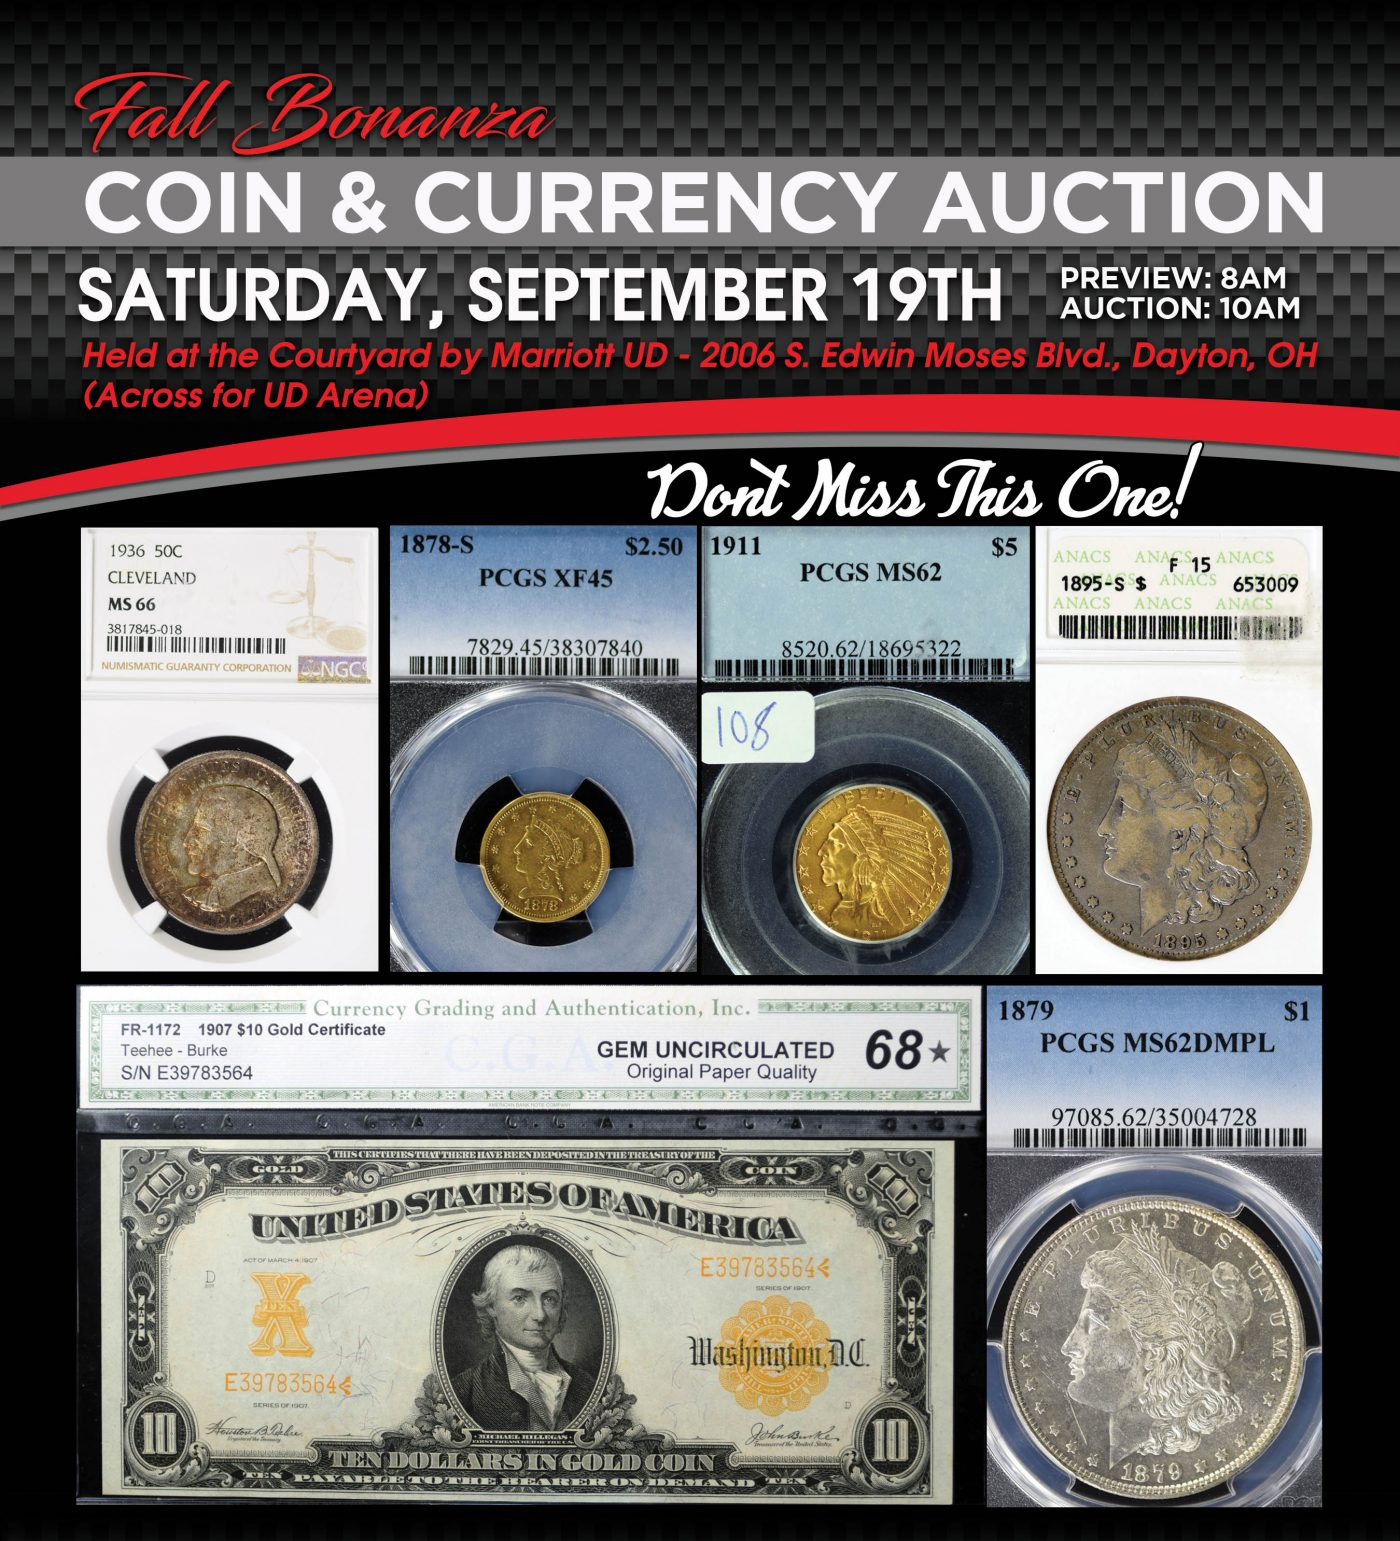 Fall Bonanza Coin & Currency Auction